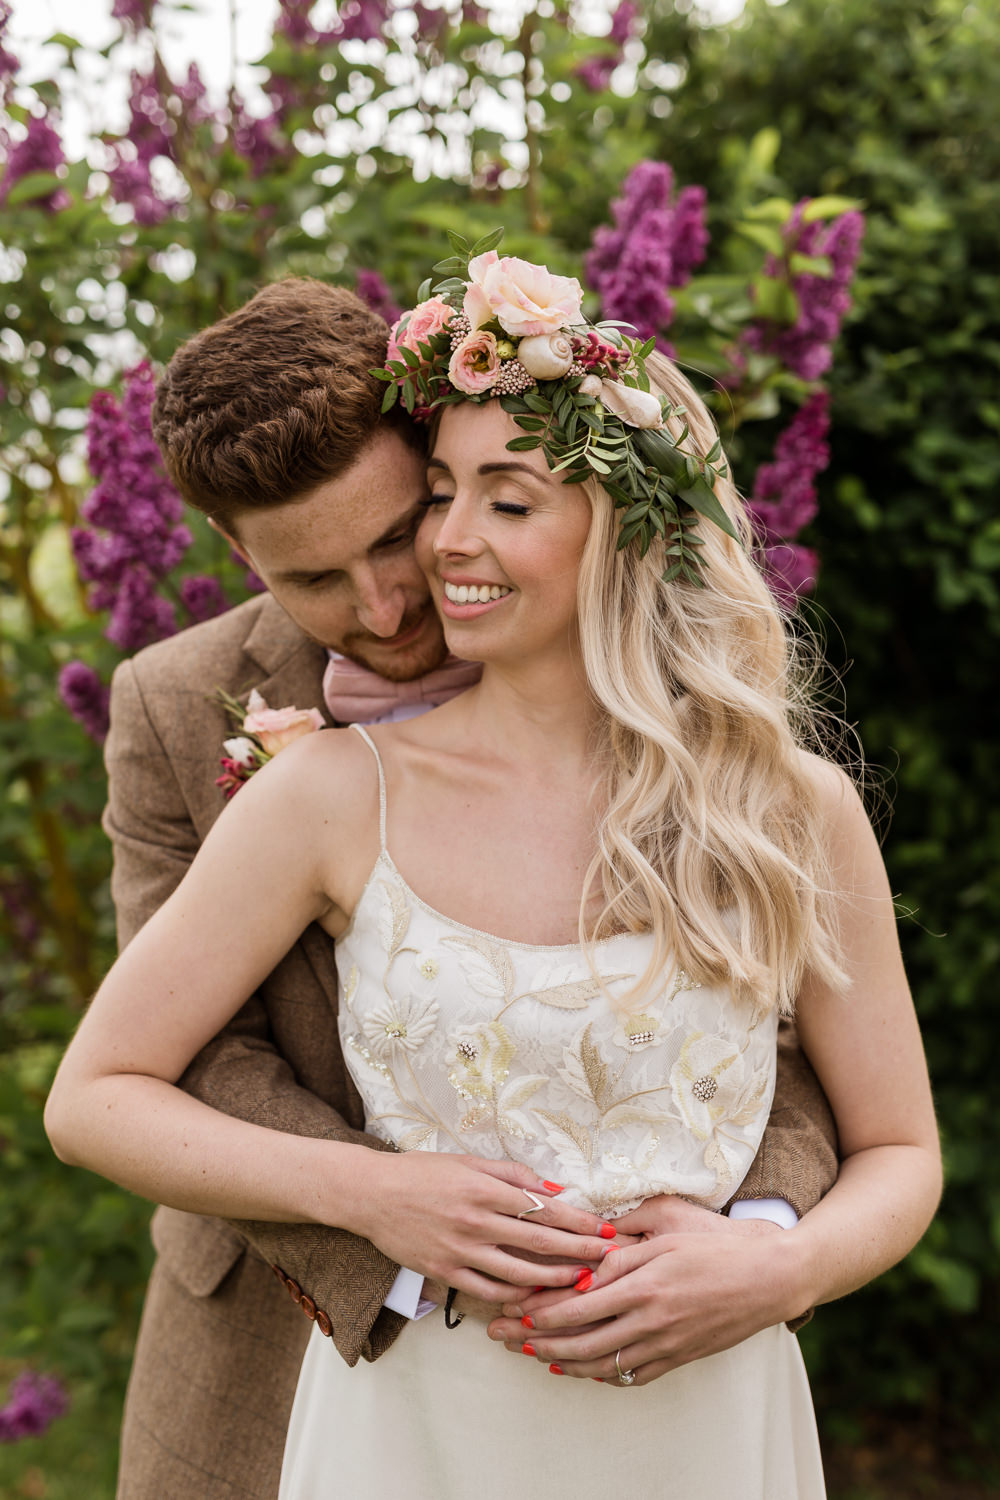 Tropical Boho Countryside Wedding Ideas Sarah Brookes Photography